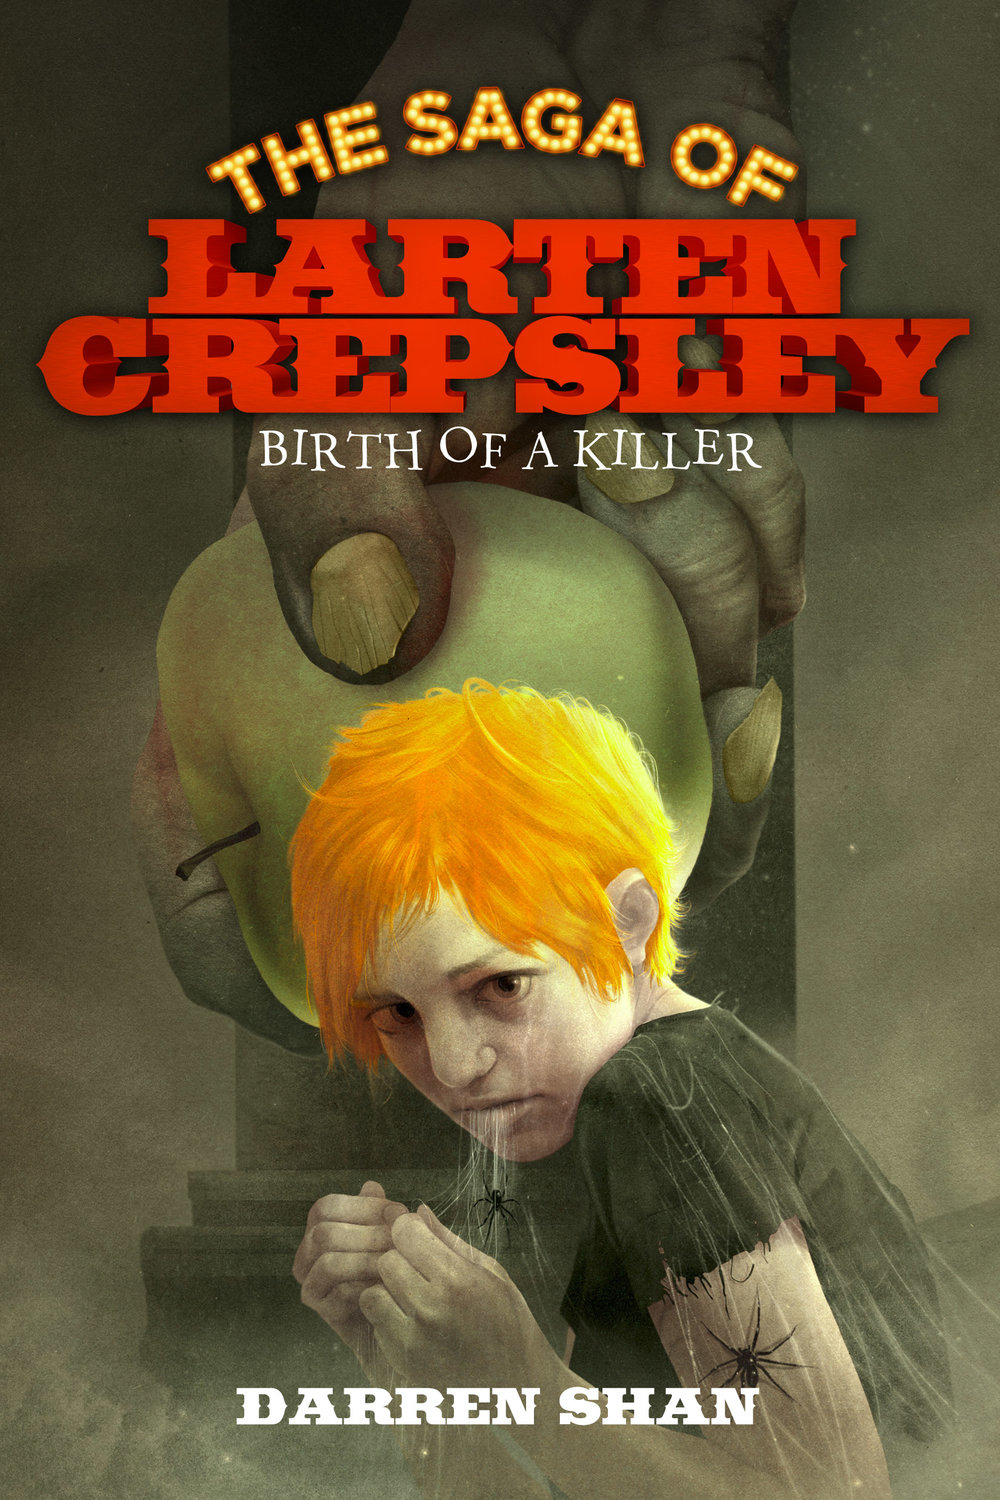 The Saga of Larten Crepsley: Birth of a Killer by Darren Shan Designed by Ben Mautner for Little, Brown Logo & Identity by Ben Mautner. Illustrated by Sam Weber.